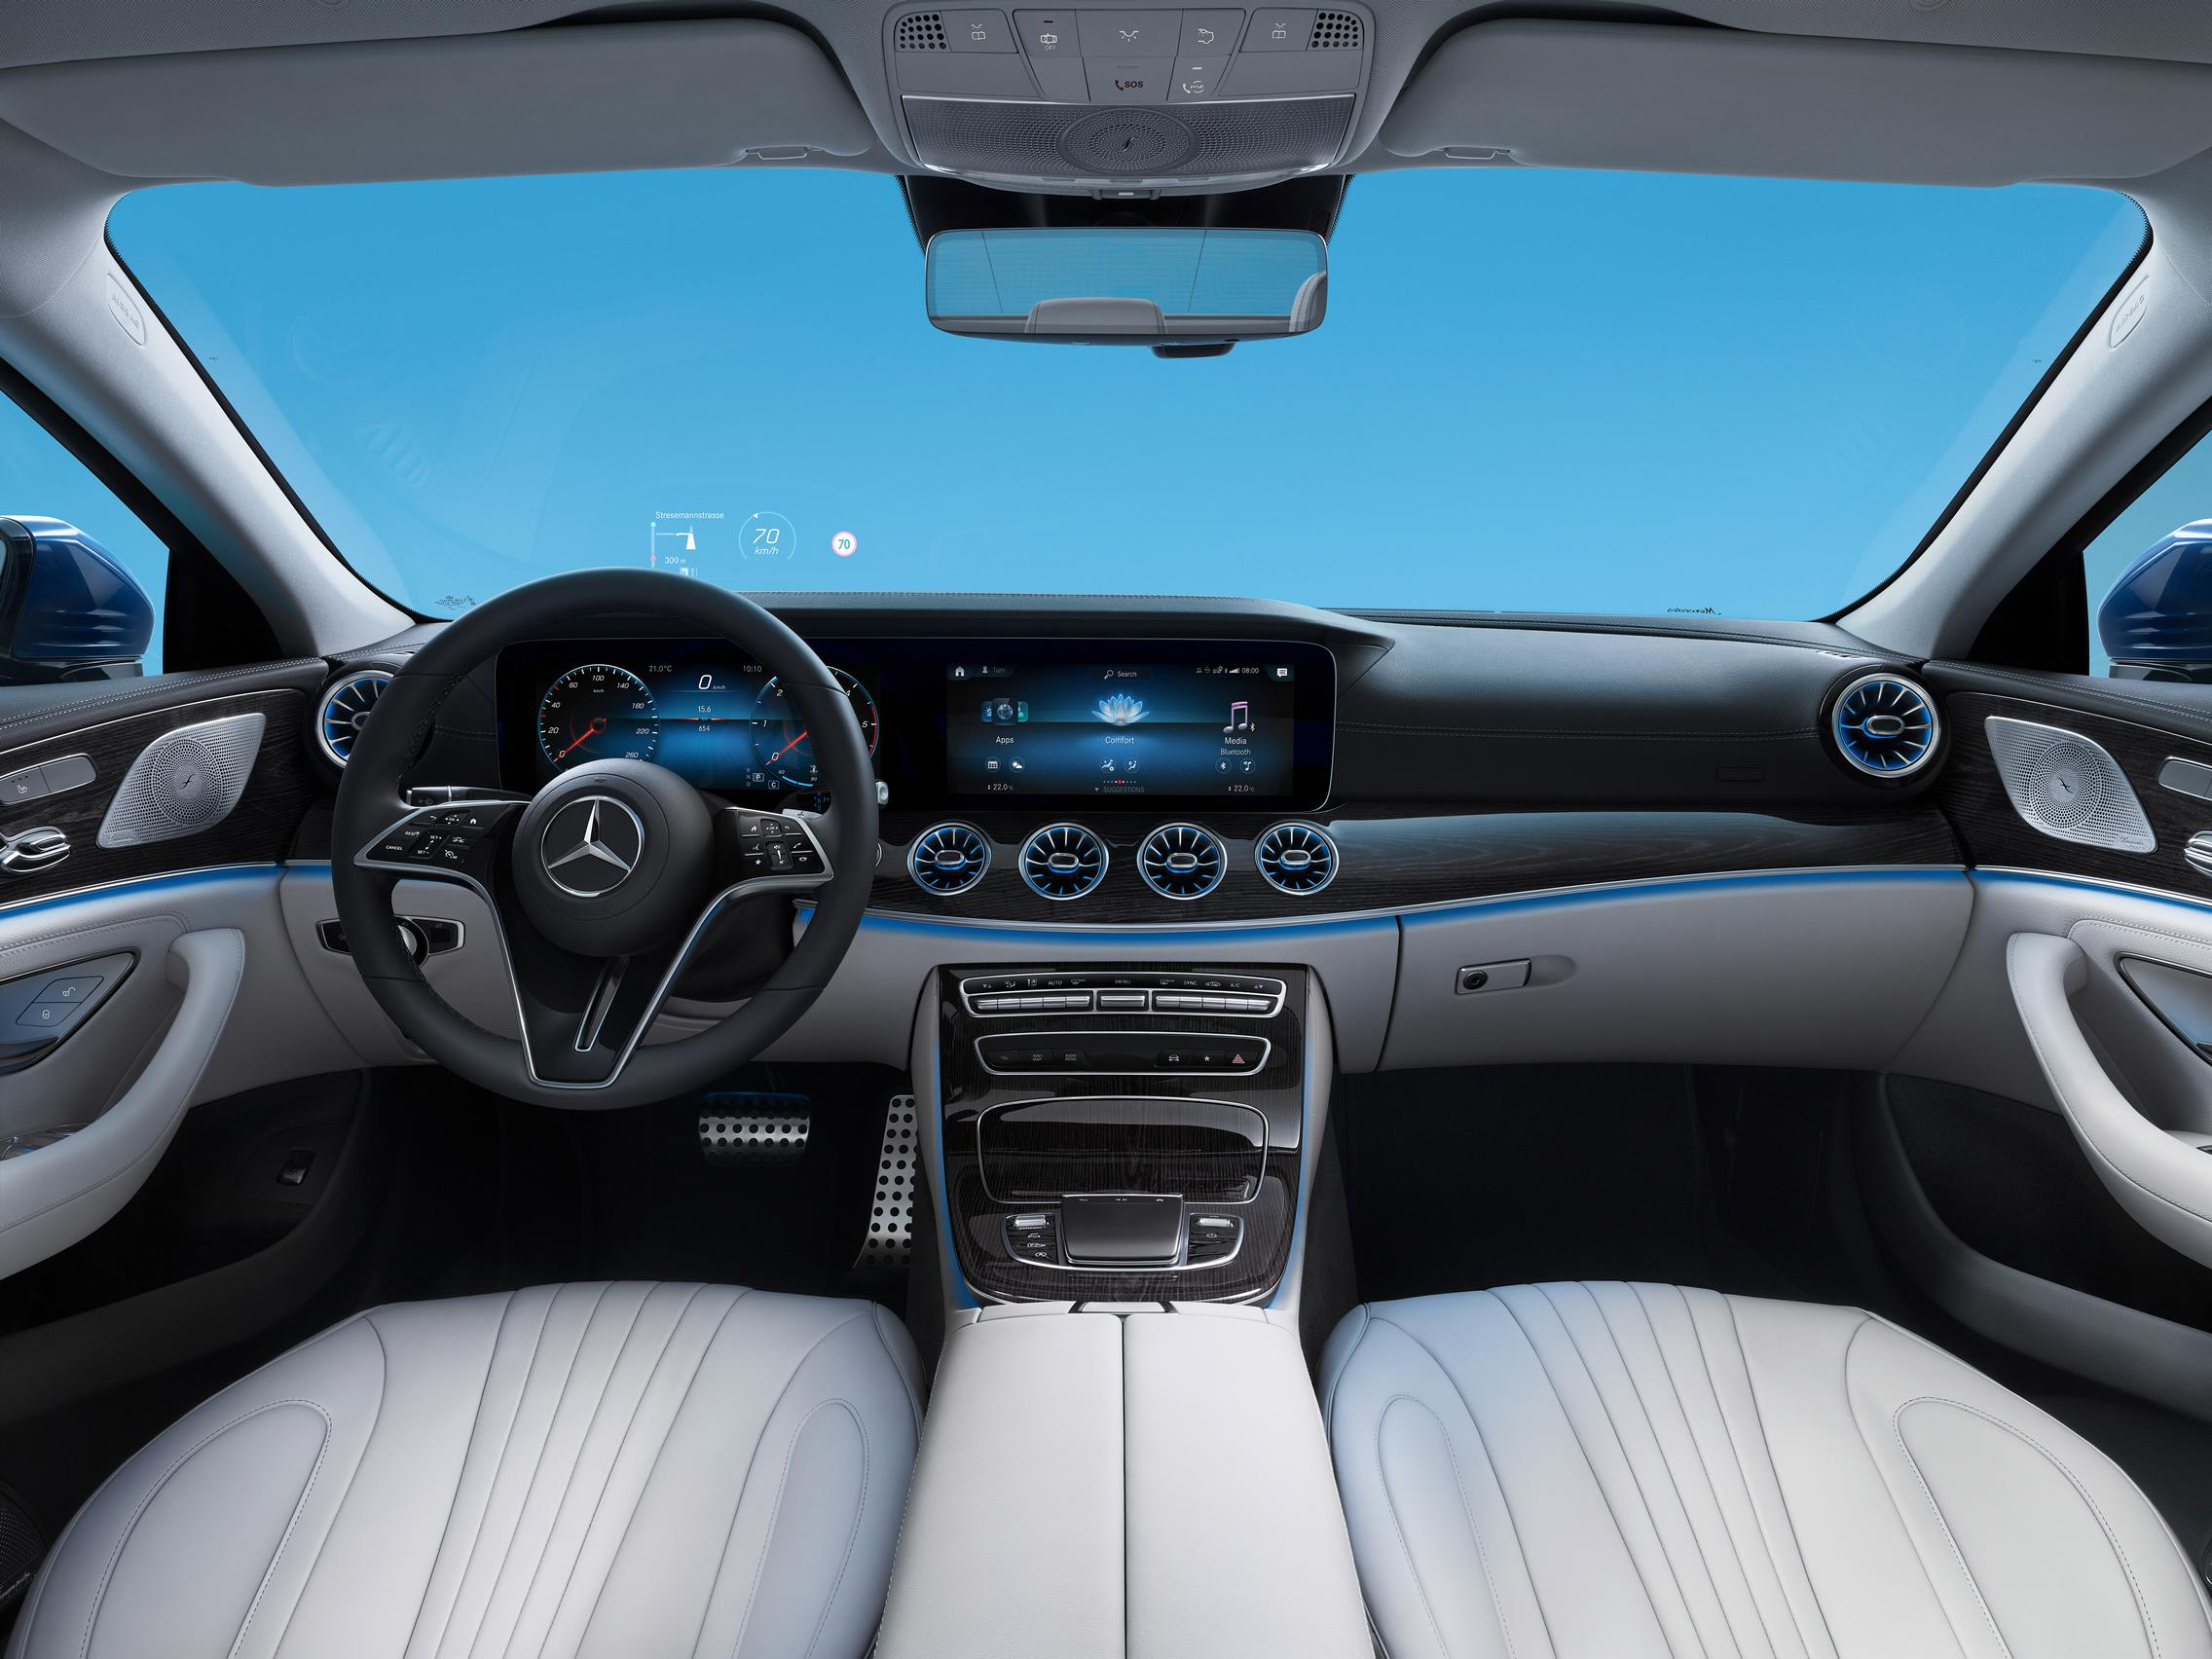 Mercedes CLS Coupe interior facelift